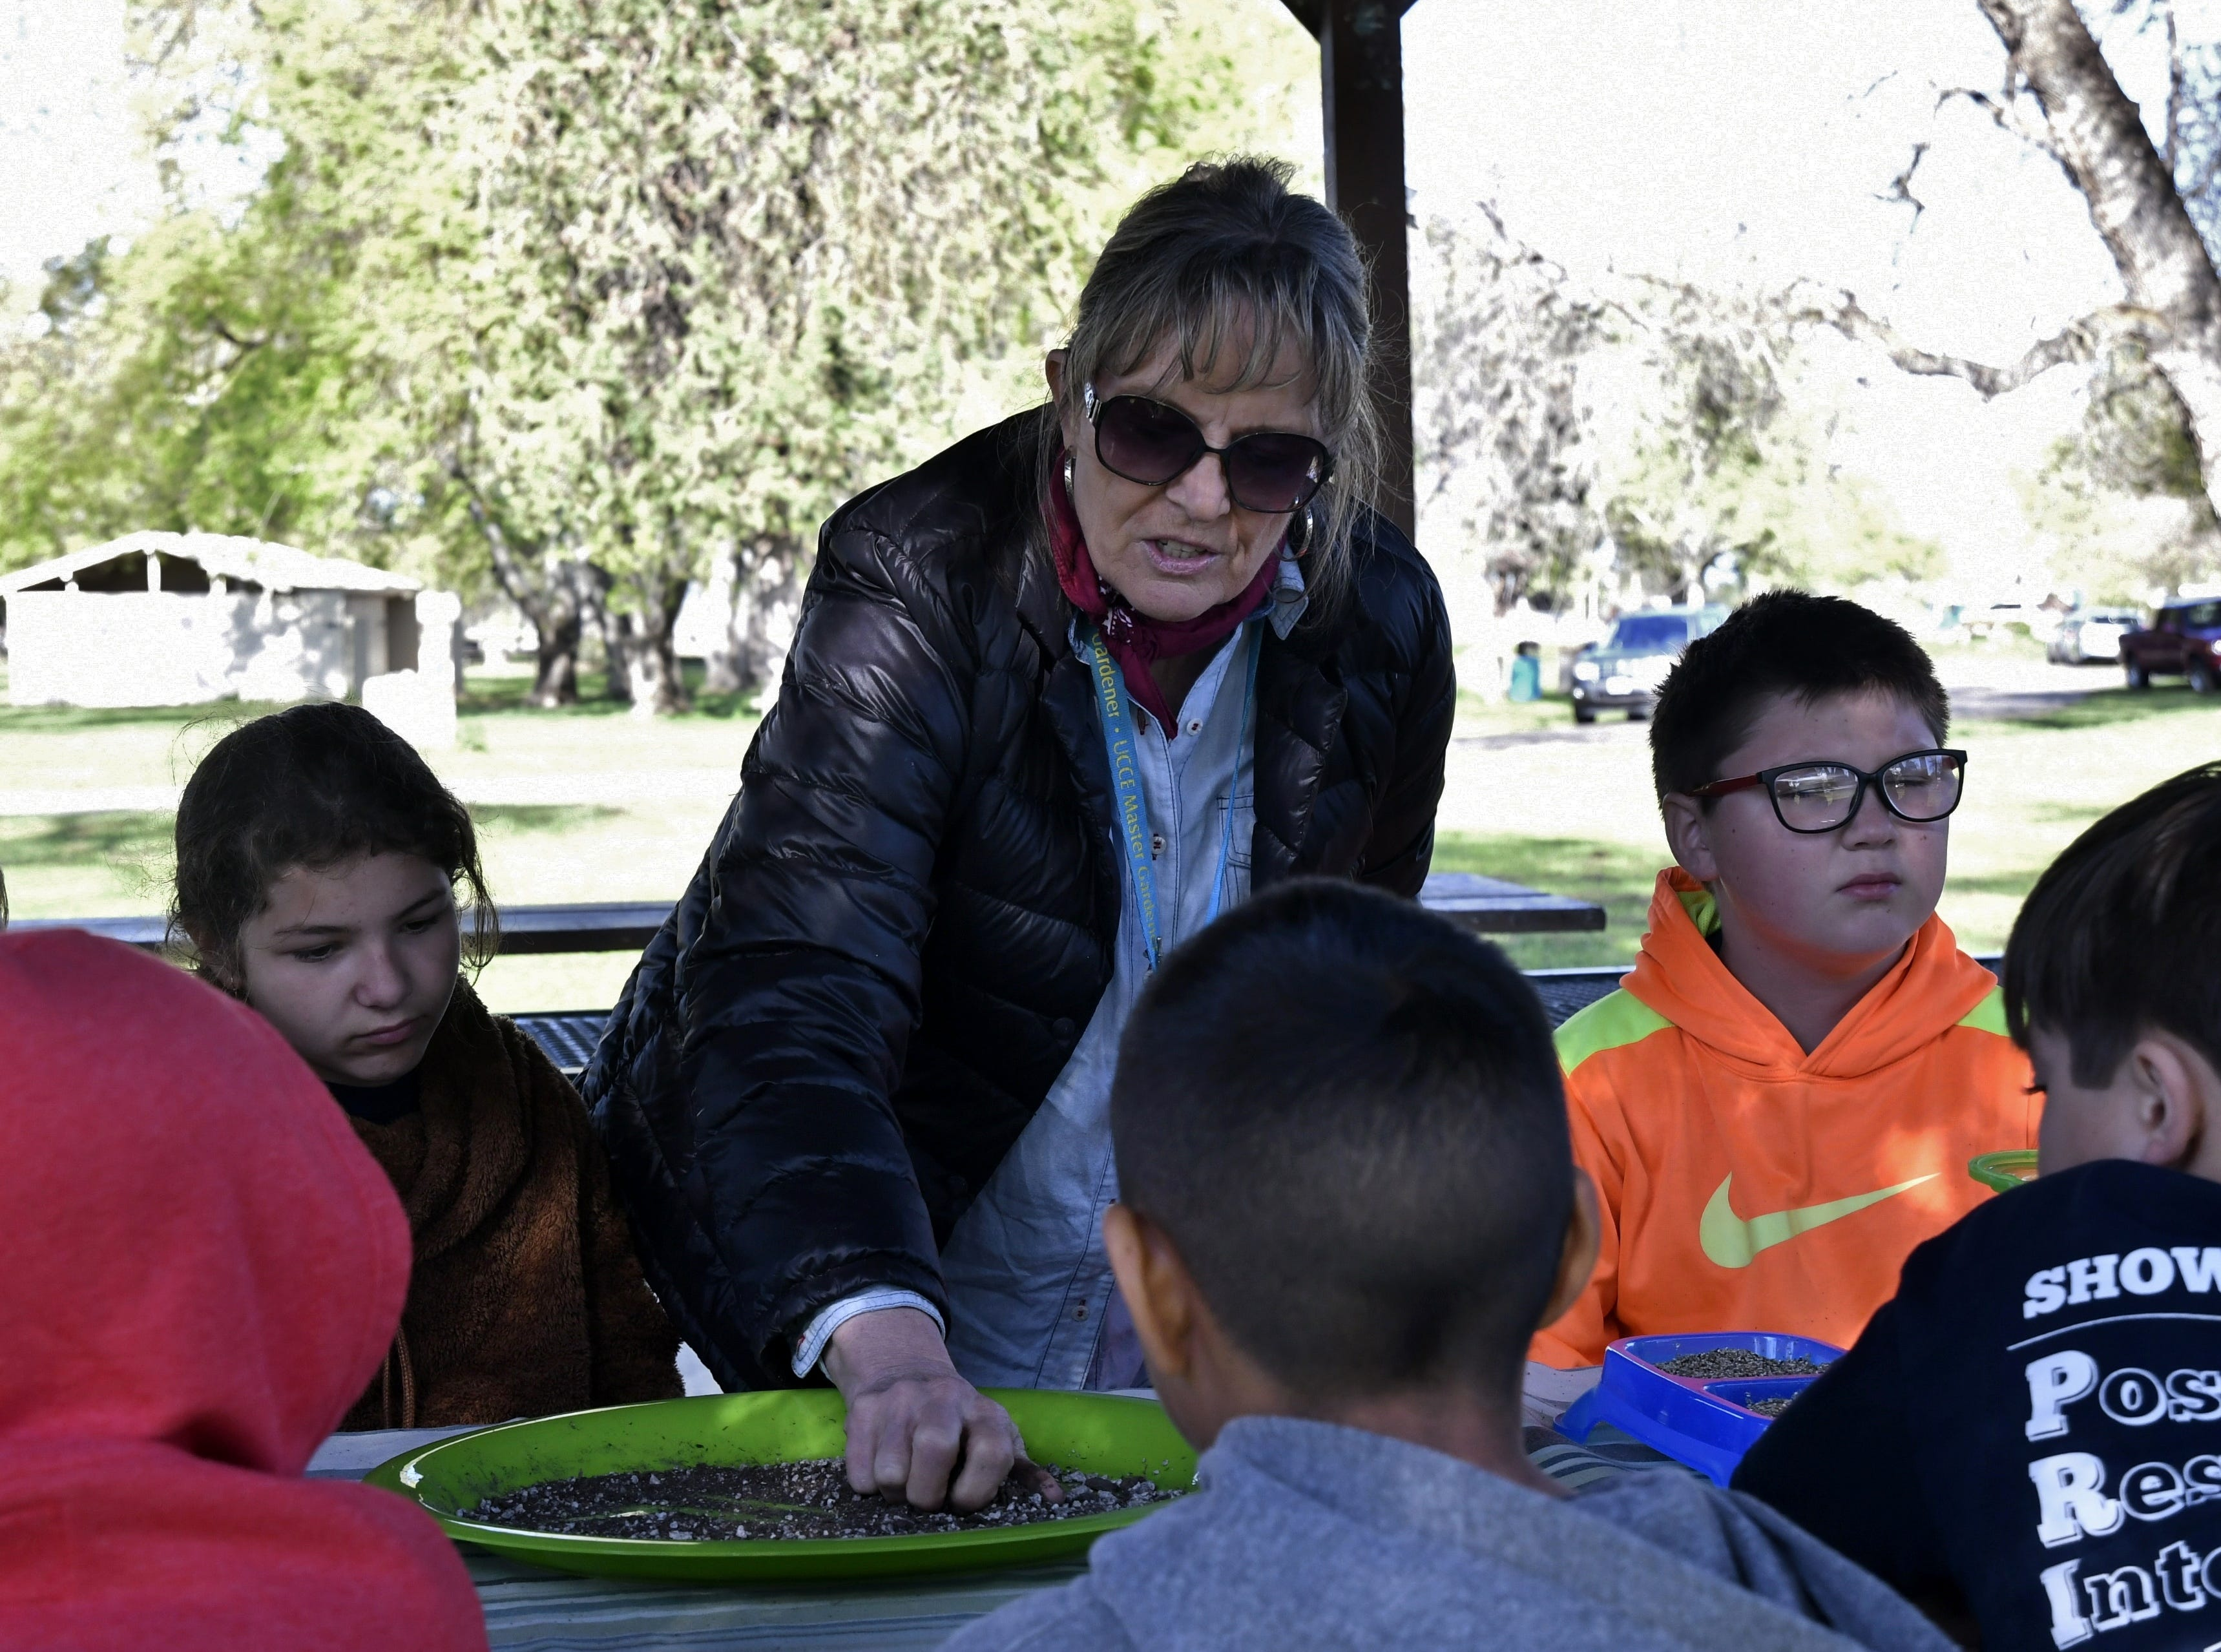 Barb Johnson, you outreach director with University of California's Master Gardeners, shows Liberty Elementary students how to make seed bombs at Mooney Grove Park on Thursday, March 28, 2019.